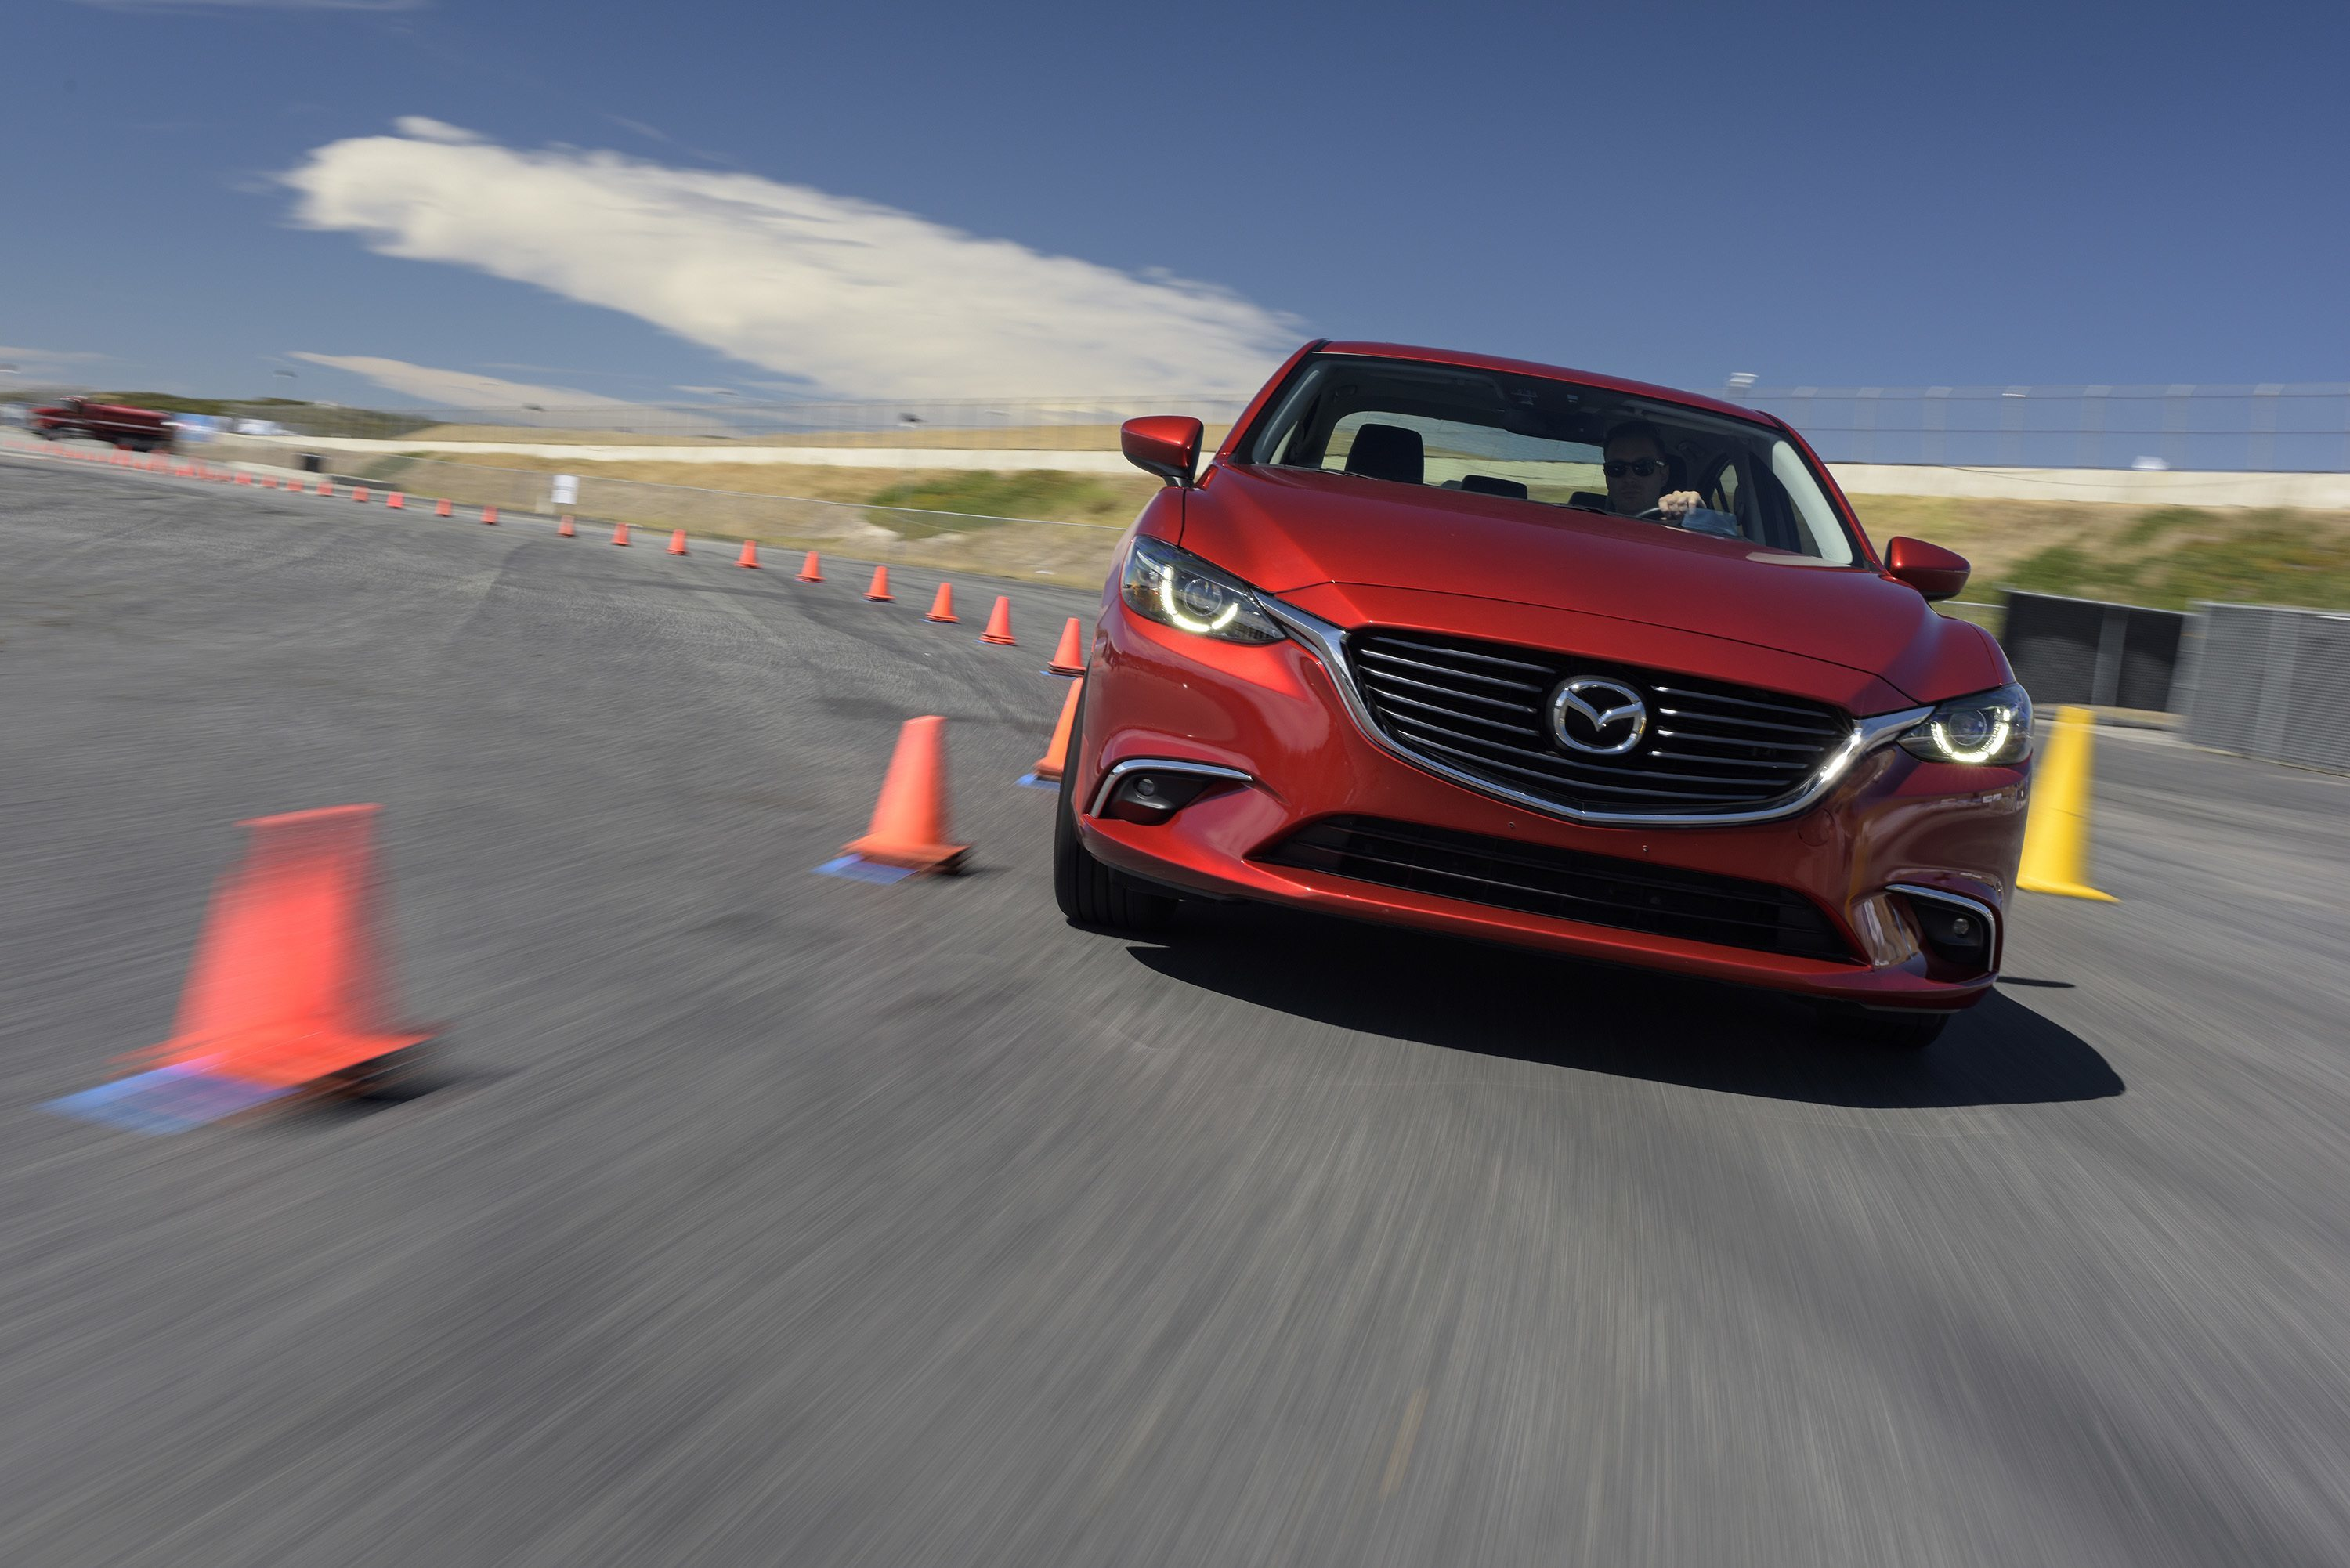 2016 Mazda6 with G-Vectoring